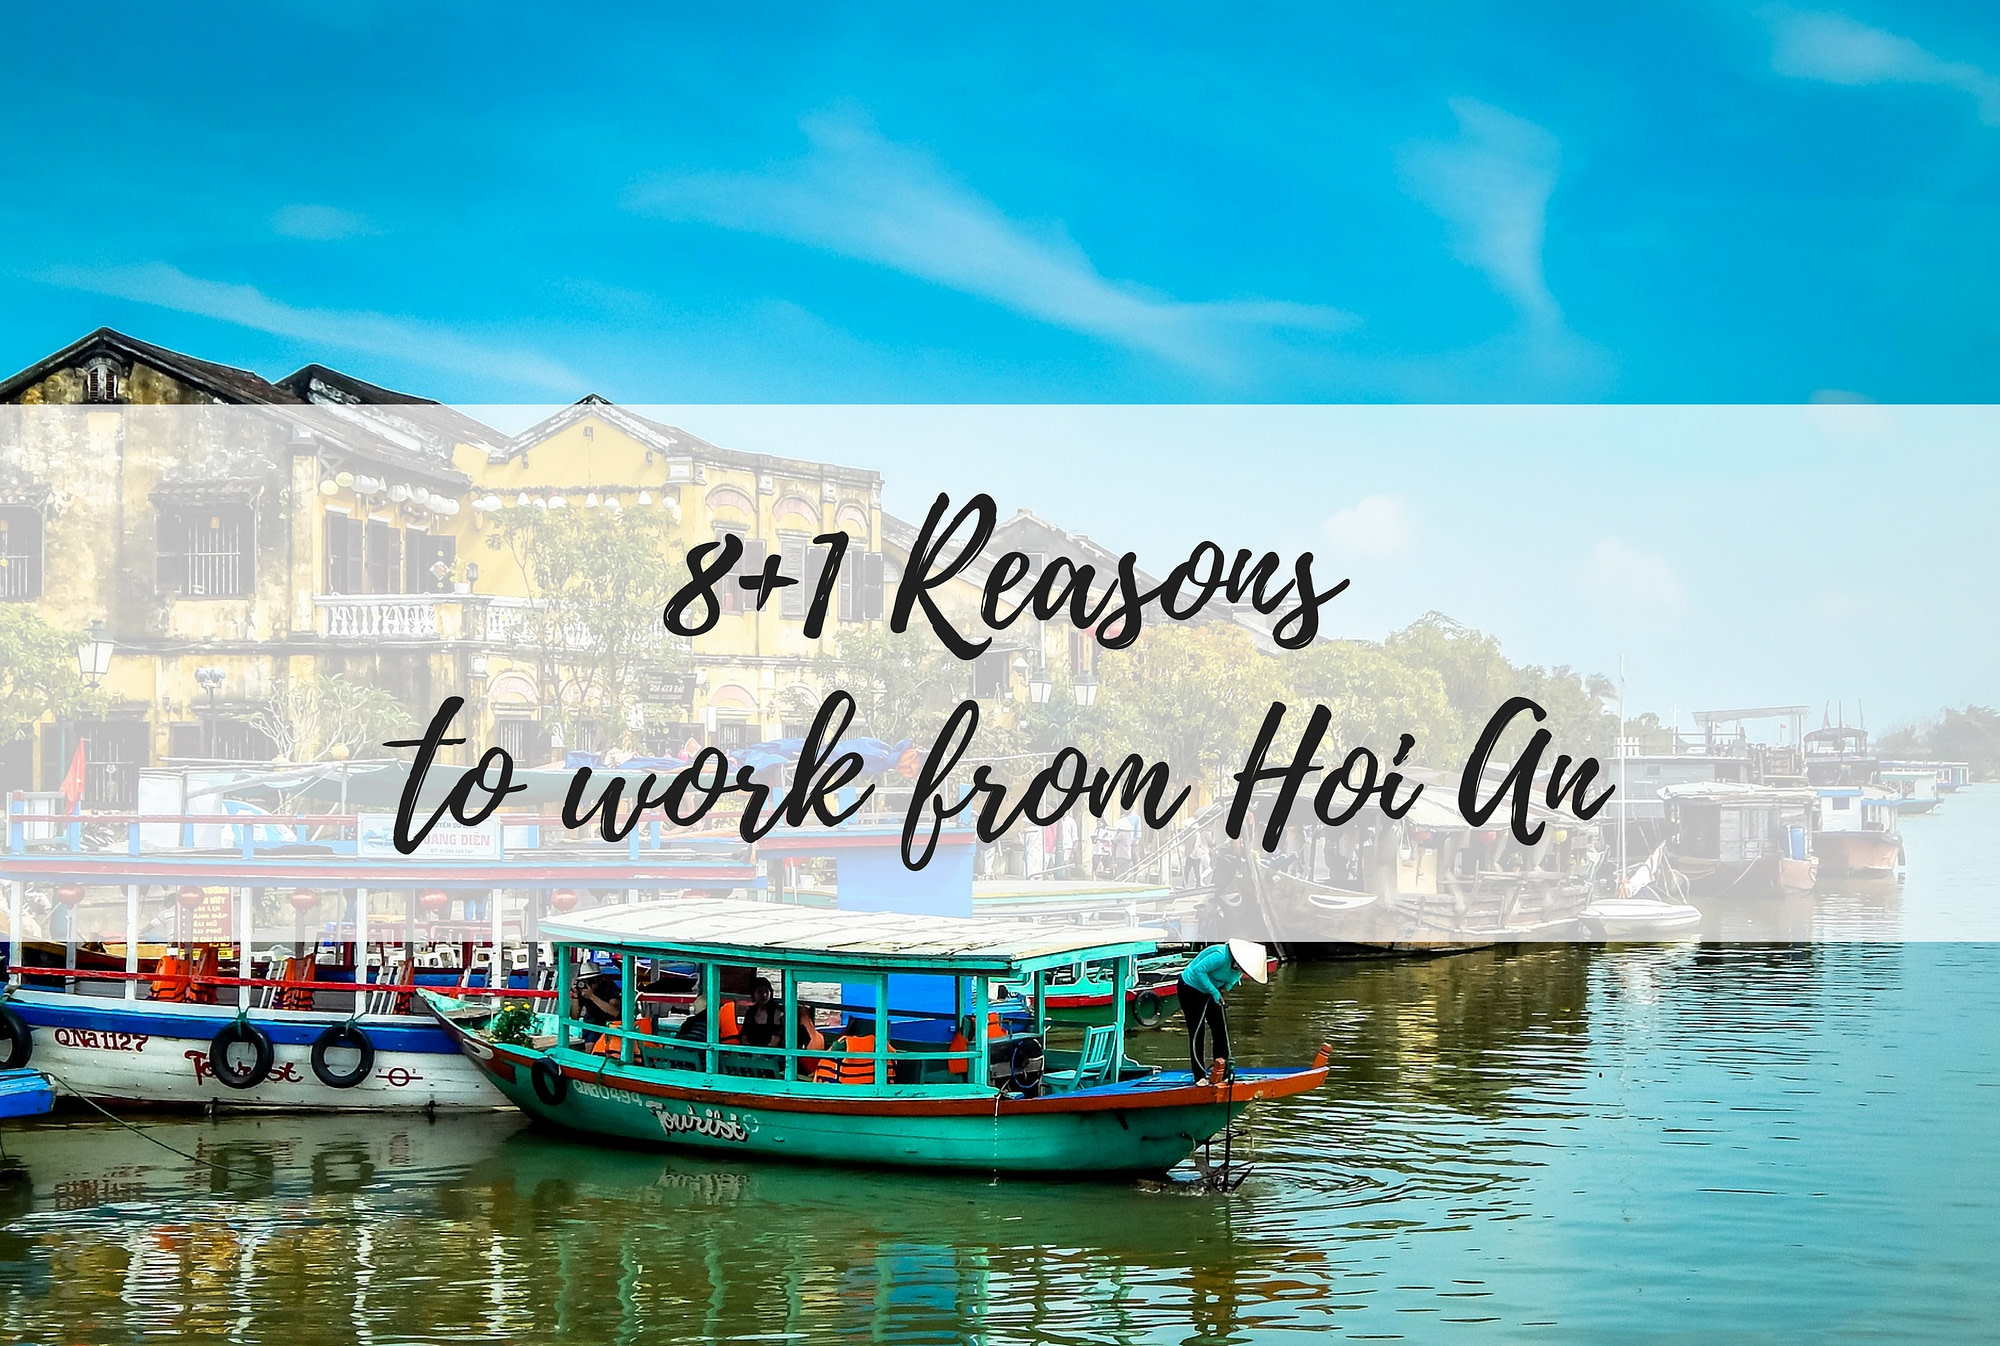 8+1 Reasons why Hoi An is the perfect Workplace